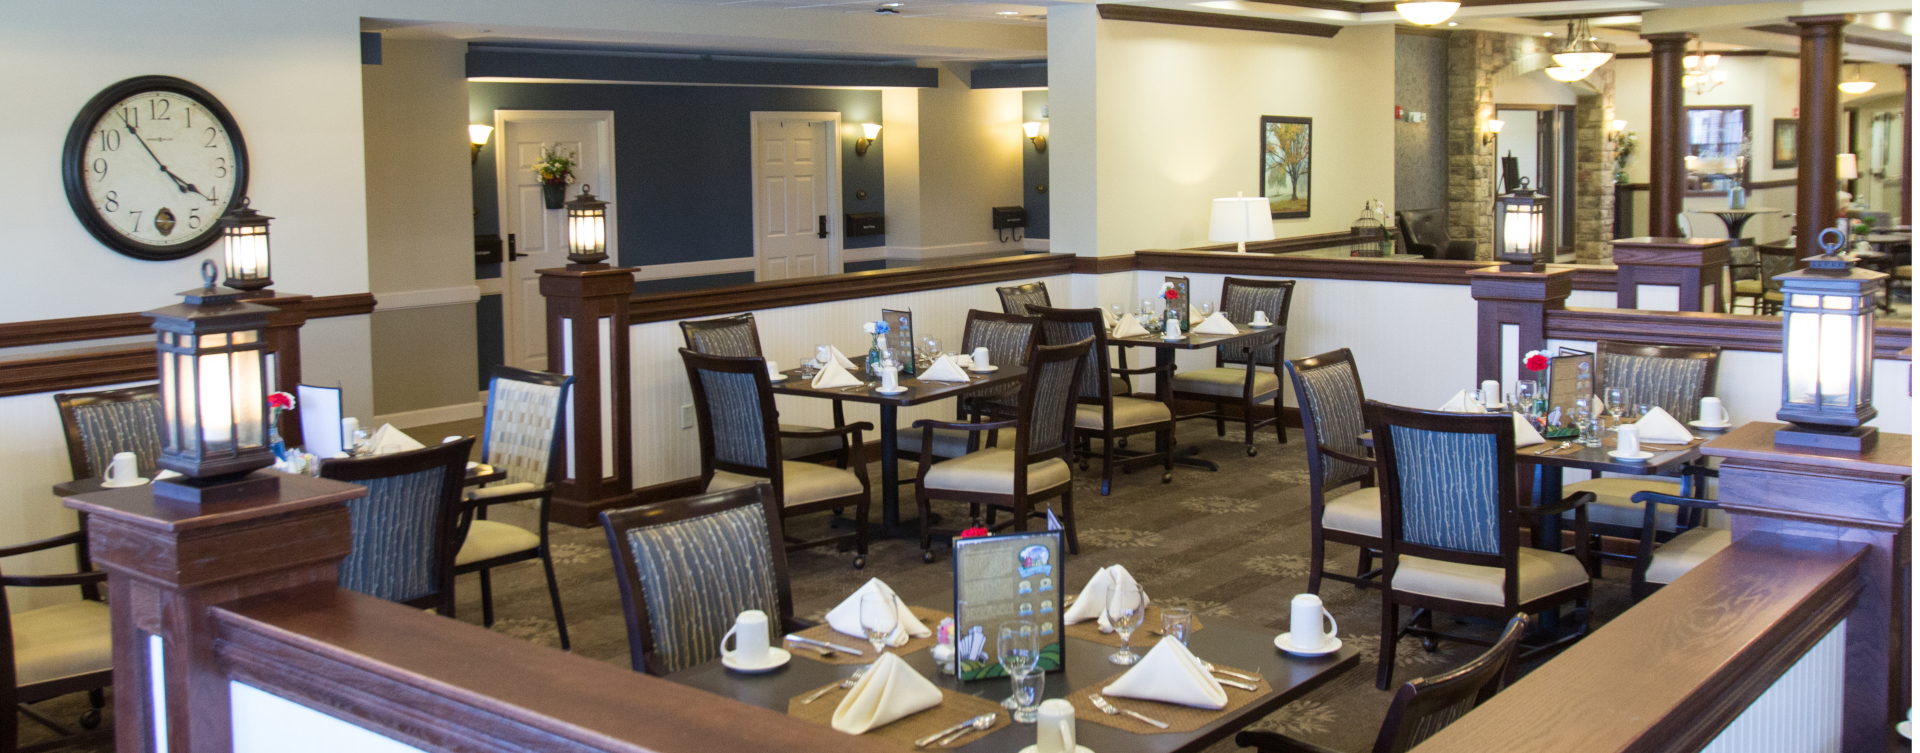 Enjoy homestyle food with made-from-scratch recipes in our dining room at Bickford of Tinley Park